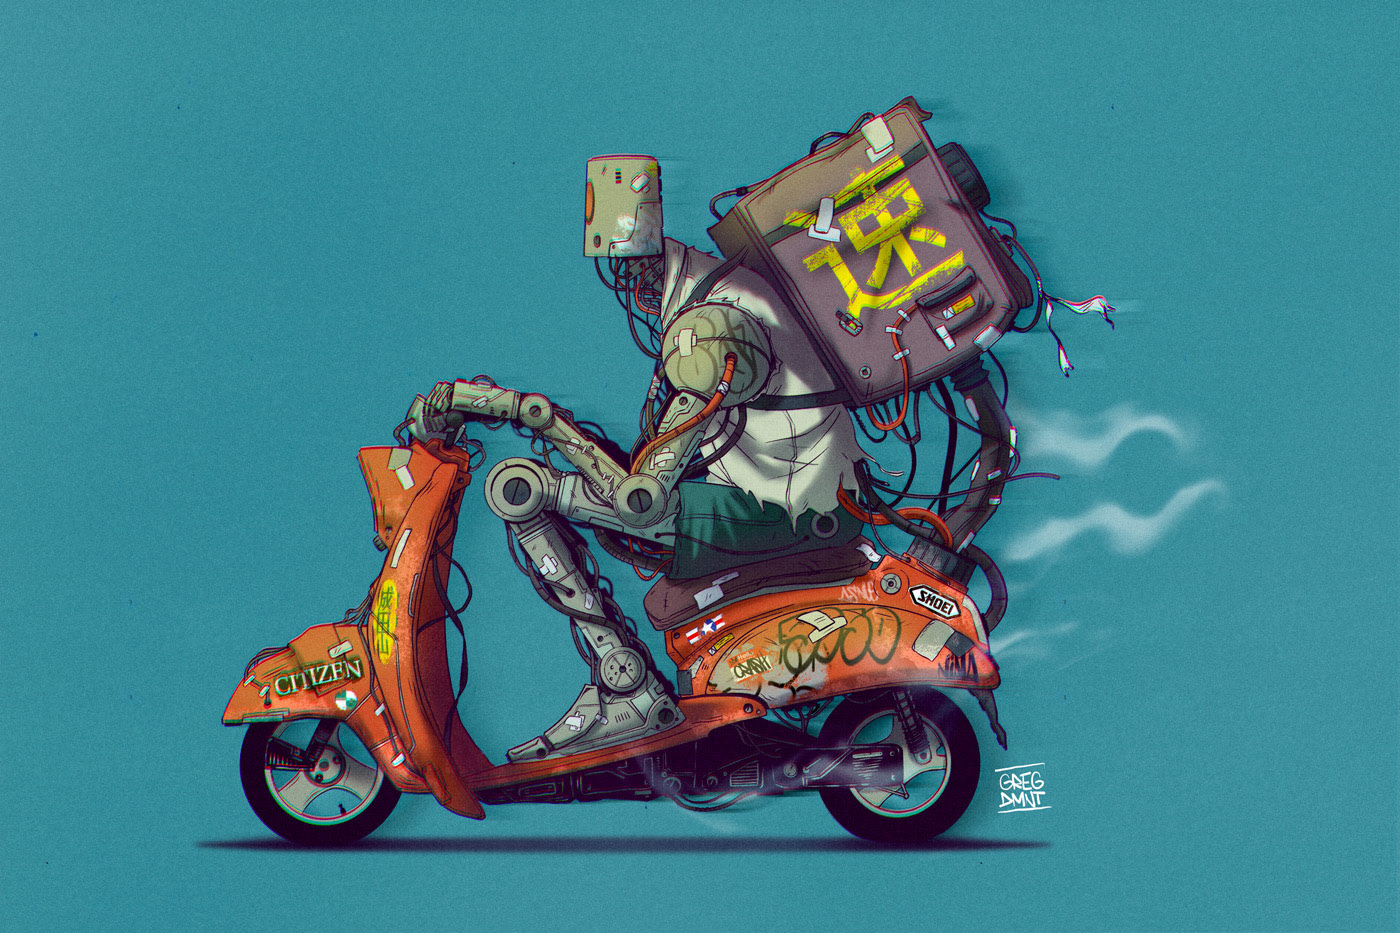 Deliverybot - 30 minutes or free pizza illustration by Greg Dmnt (Grapheart)